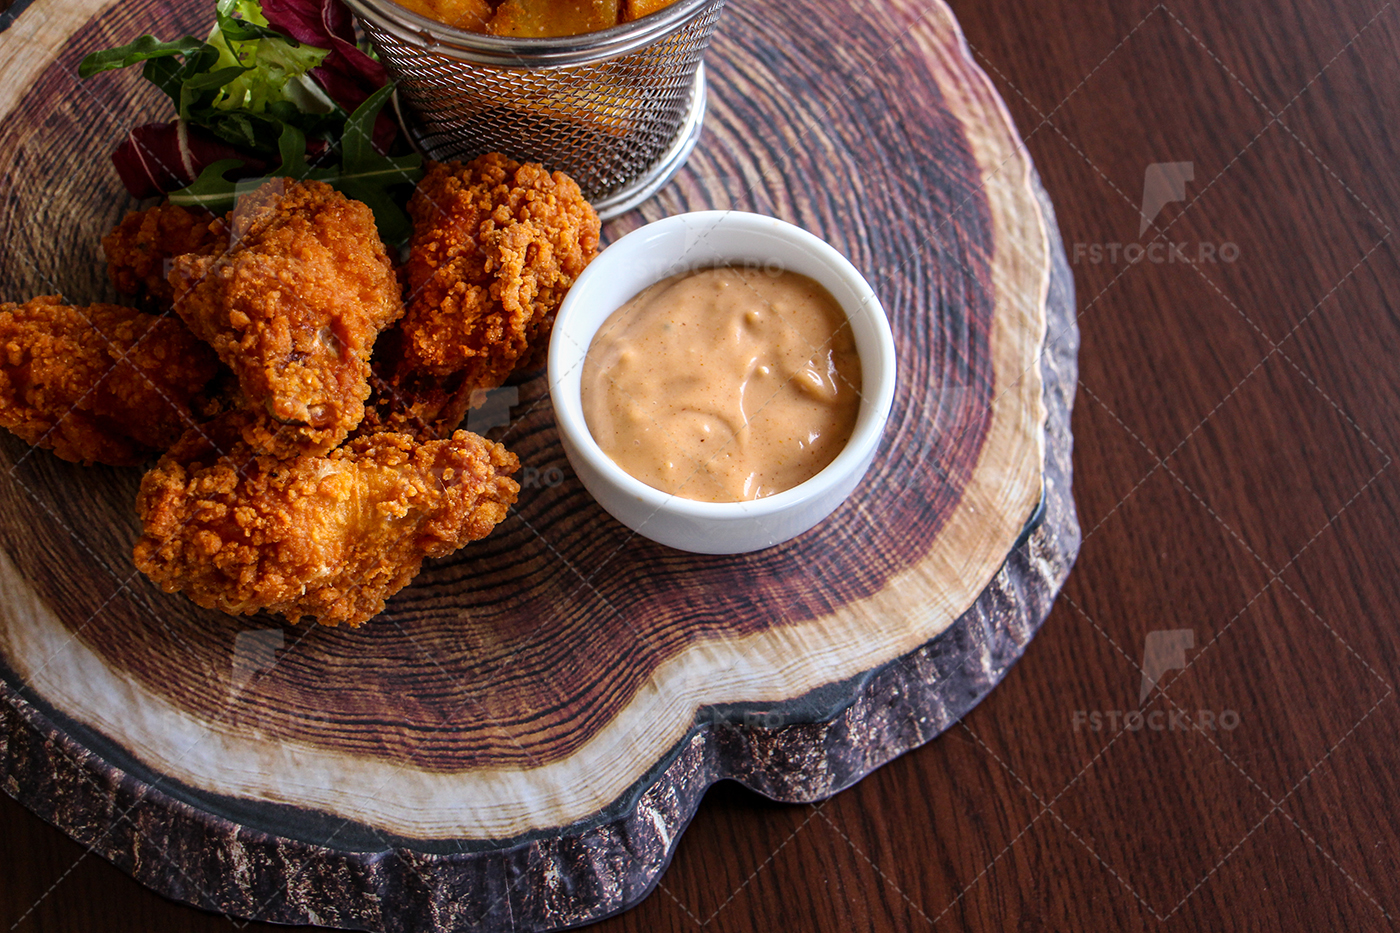 Spicy chicken strips on wooden plate with sauce over, top view, closeup